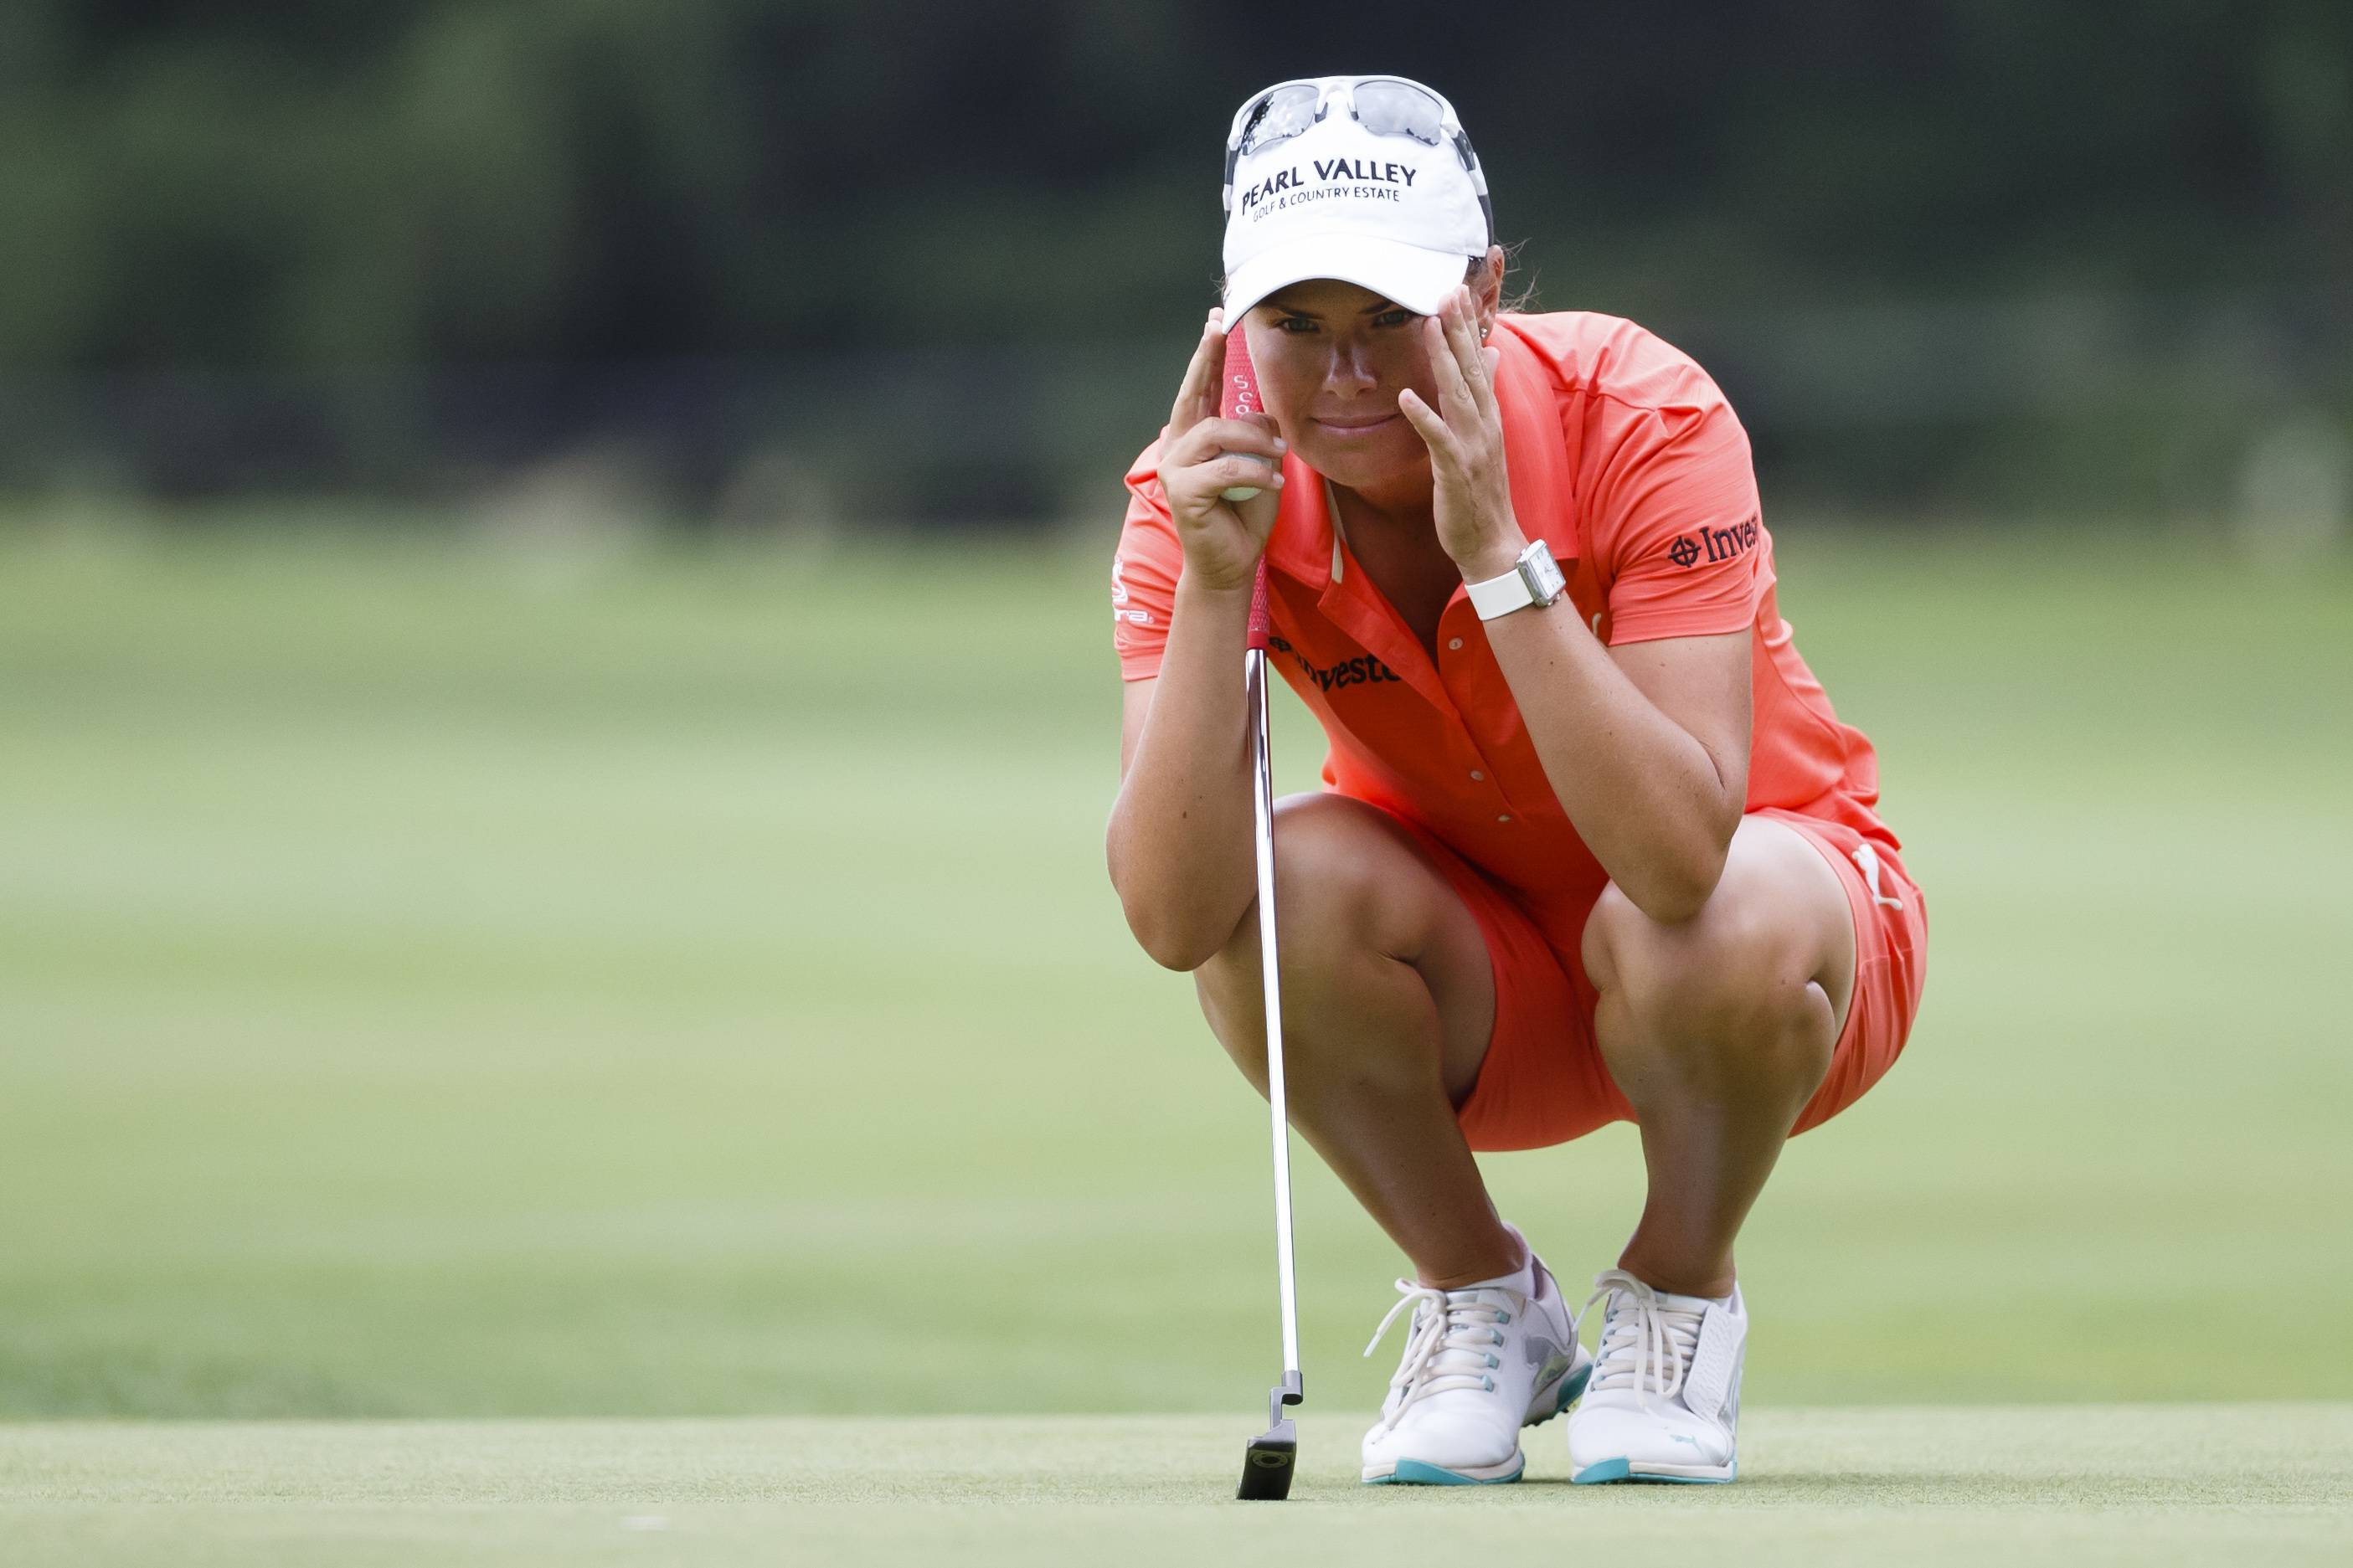 Lee-Anne Pace, of South Africa, lines up a putt on the 17th green during the third round of the Marathon Classic LPGA golf tournament at Highland Meadows Golf Club in Sylvania, Ohio, Saturday, July 19, 2014.